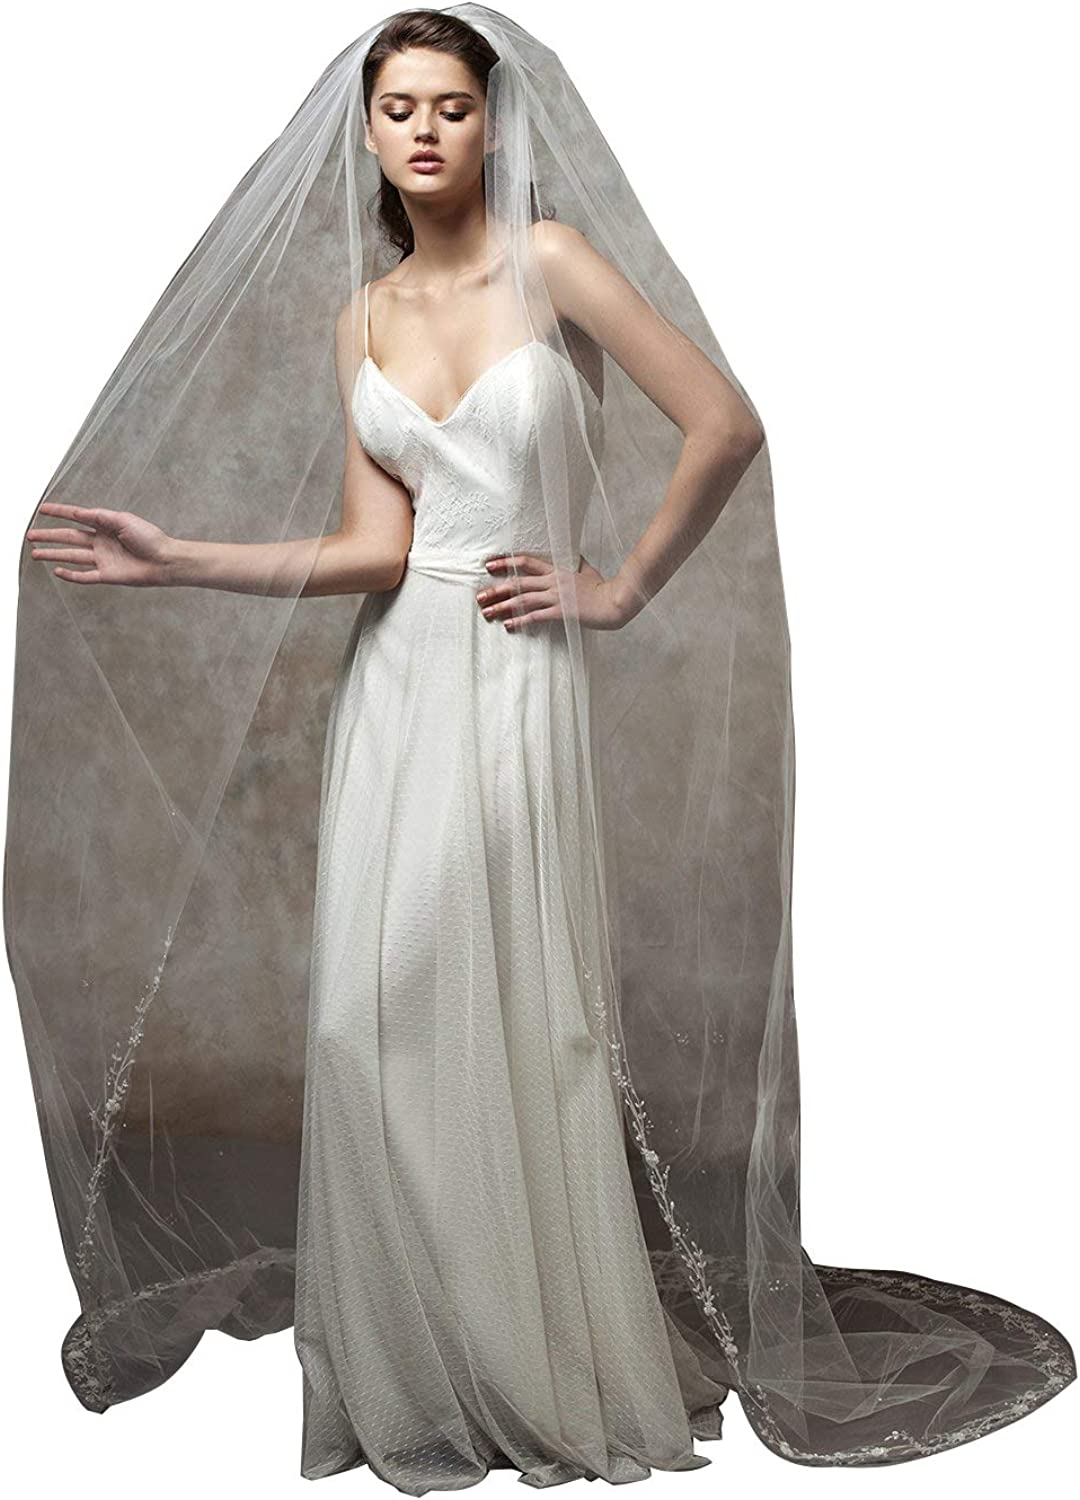 Fenghuavip 1T Simple 3M 4M Wedding Veil for Brides Beaded Appliques with Comb